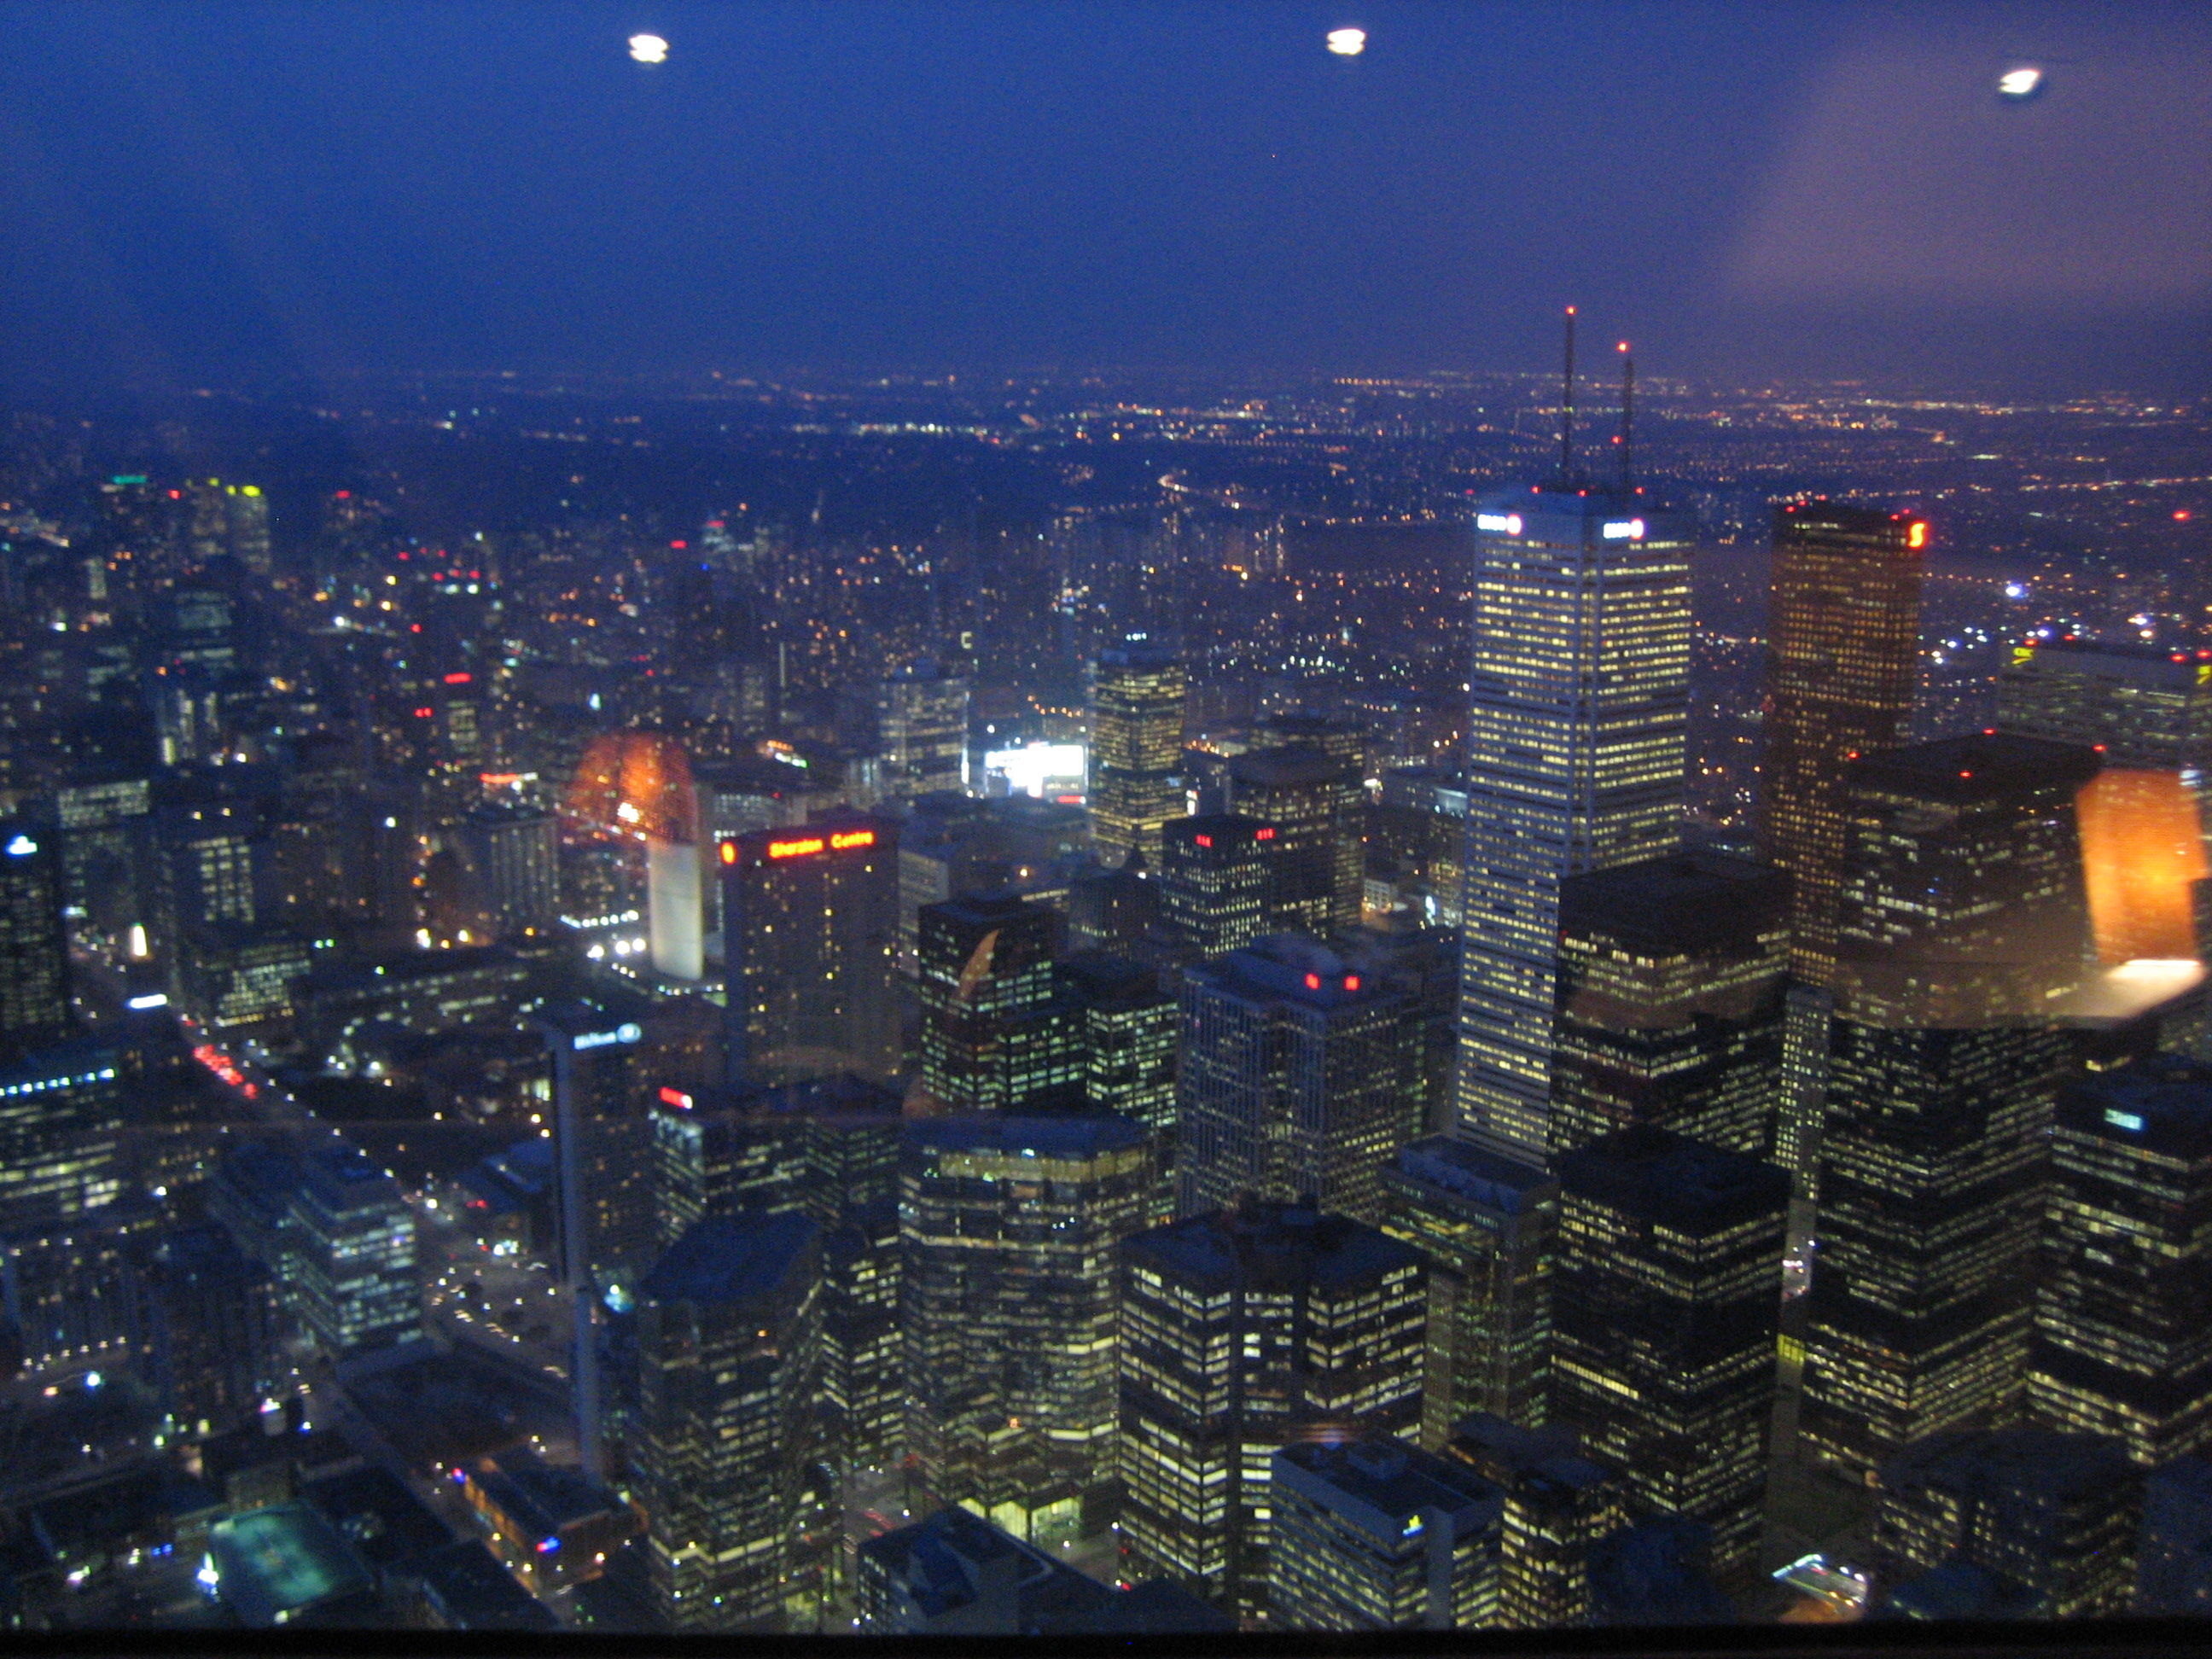 Toronto - From the 360 restaurant on top of the CN tower